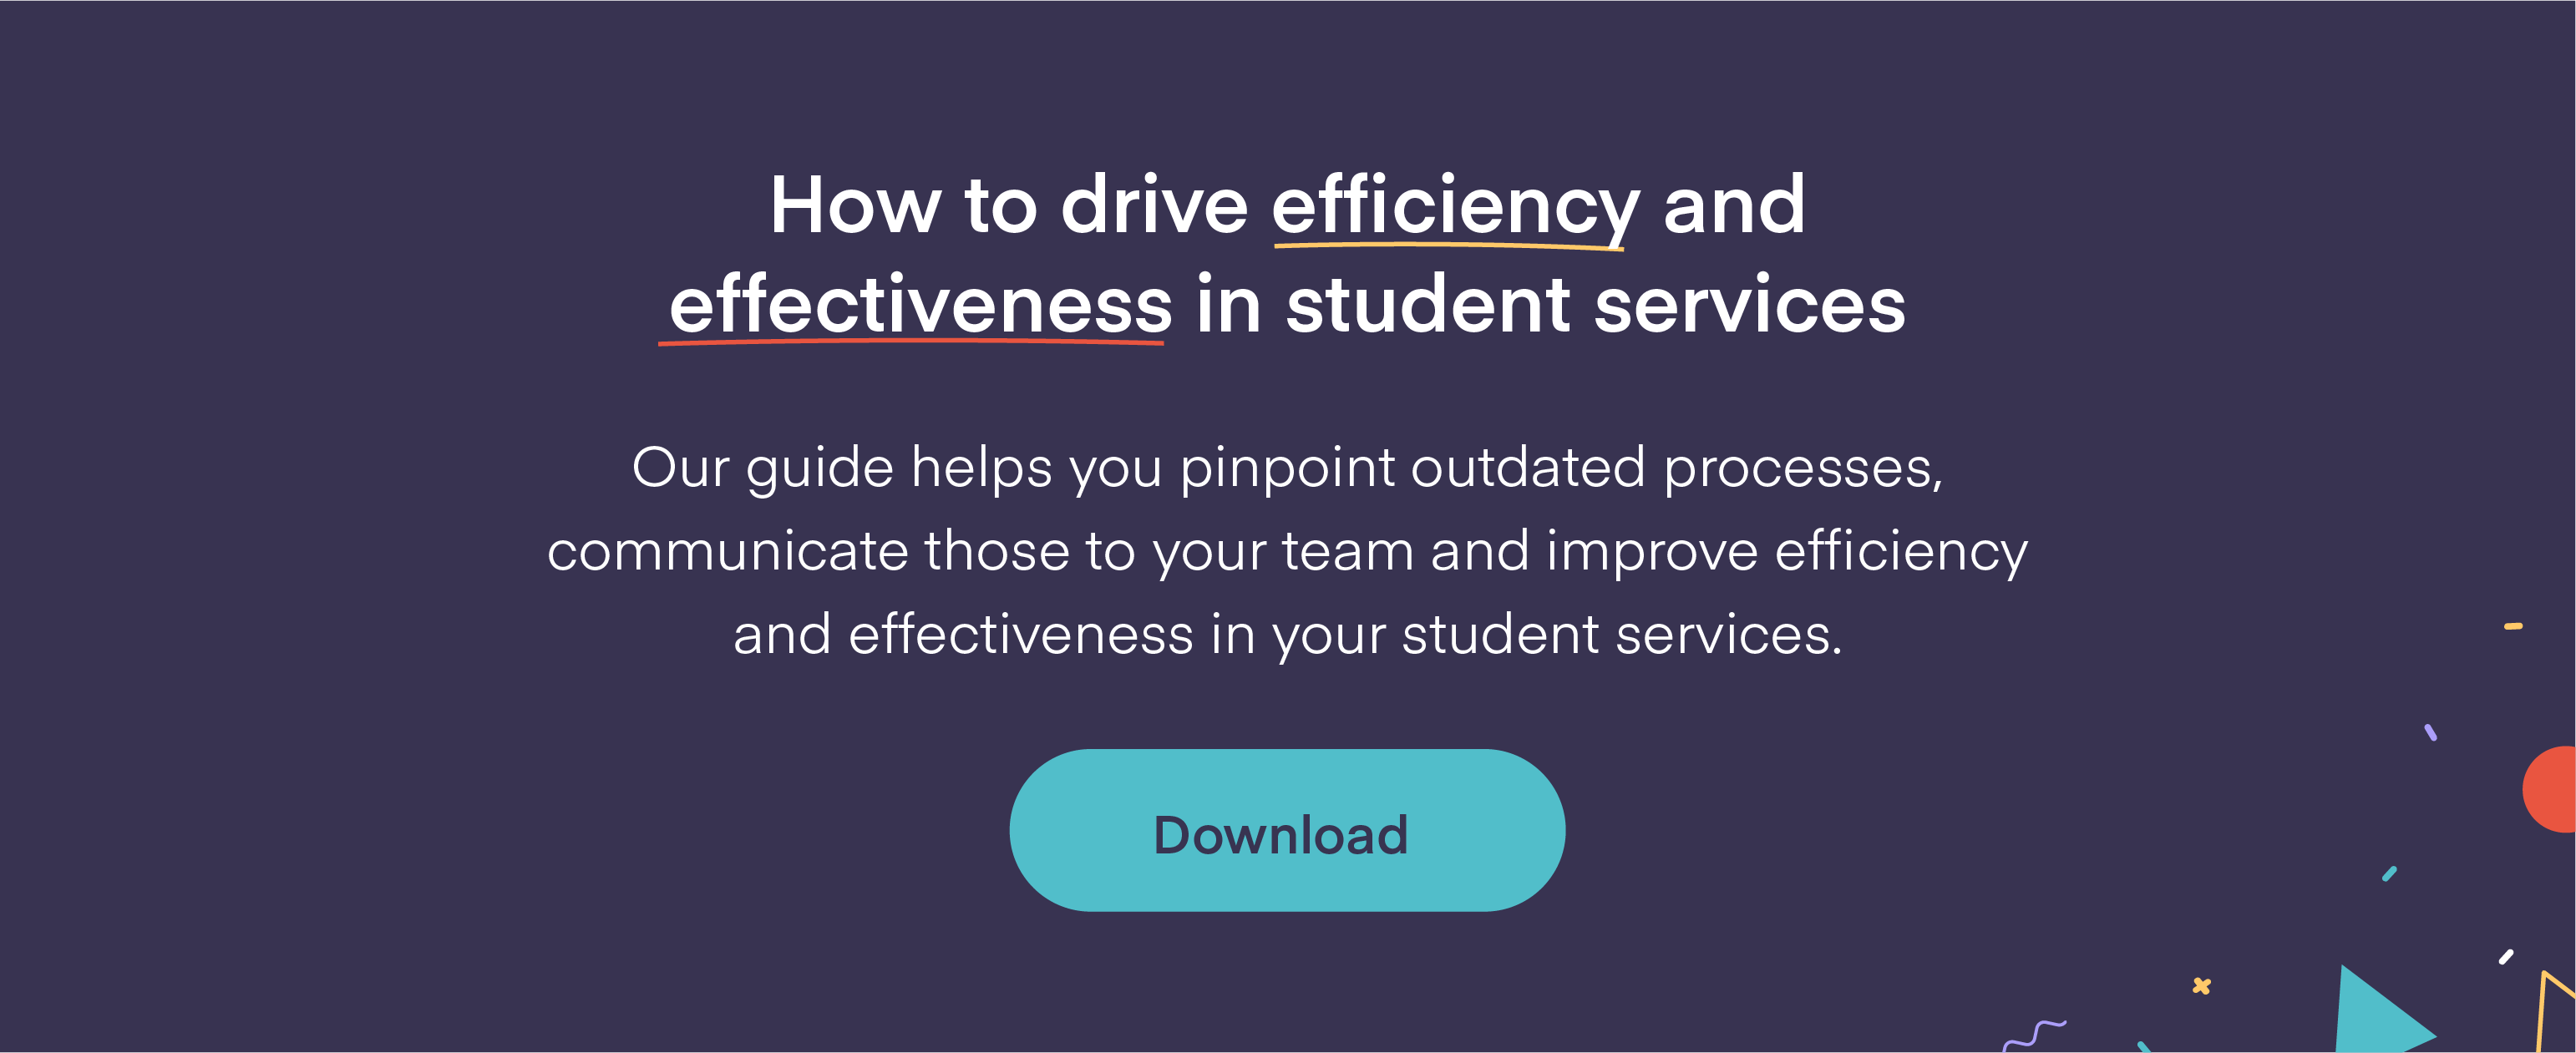 How to drive efficiency and effectiveness in student services download button